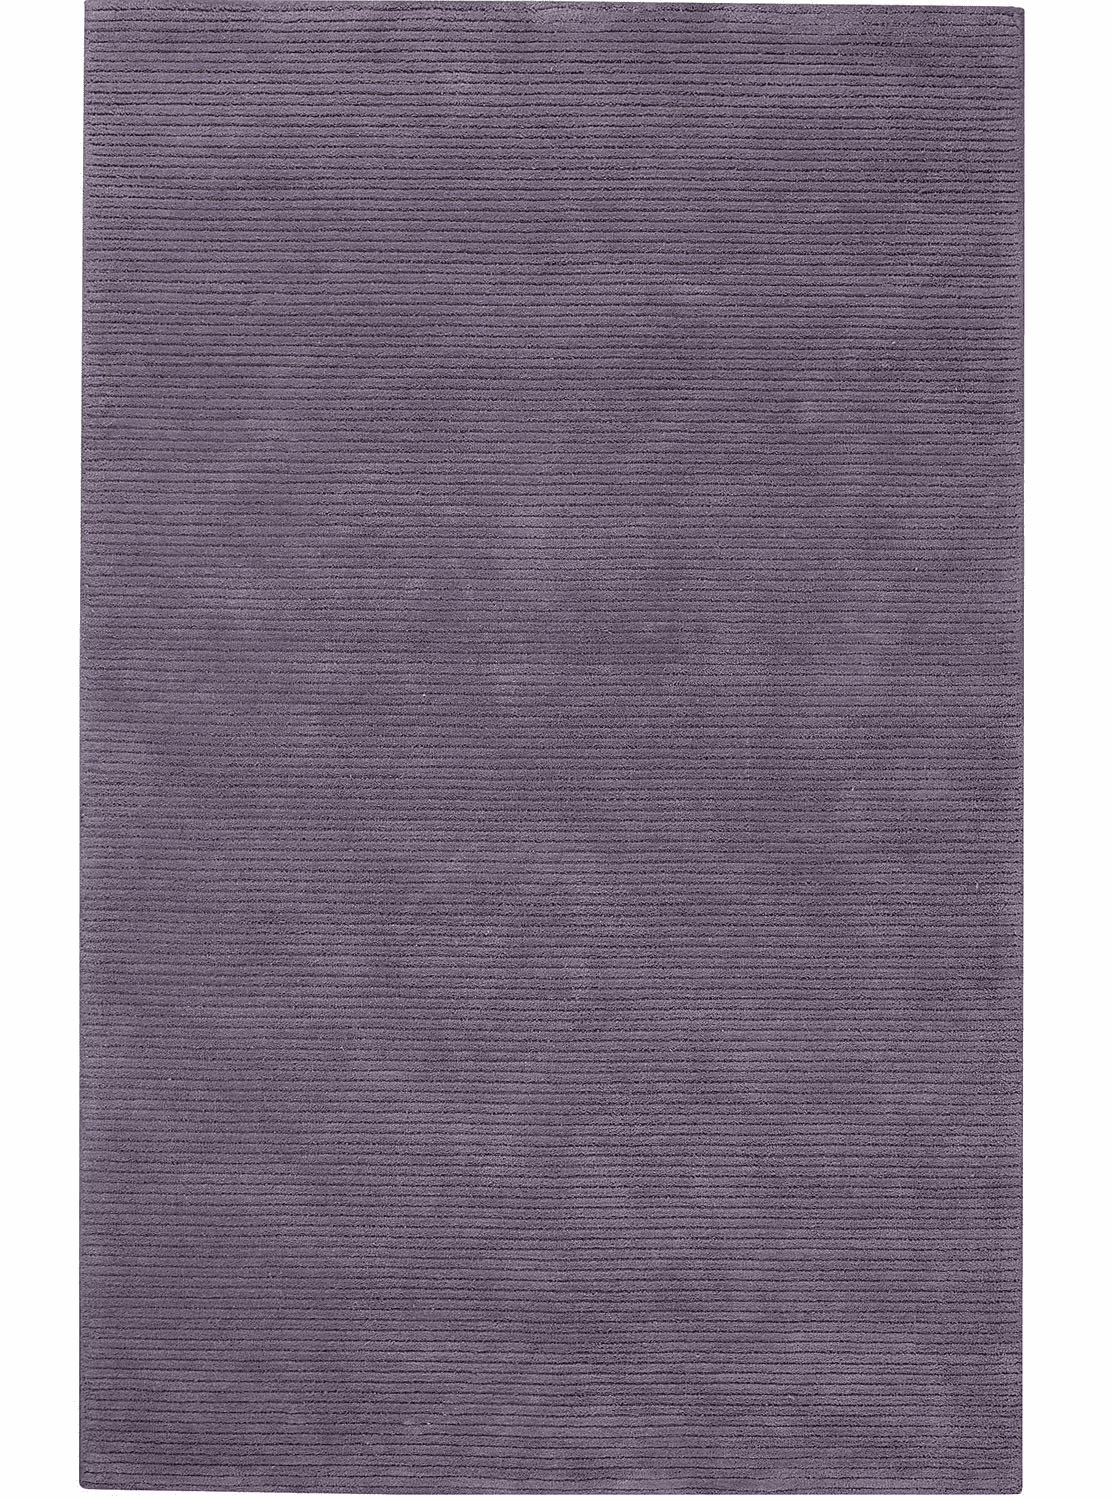 Hand Tufted Light Purple Rug